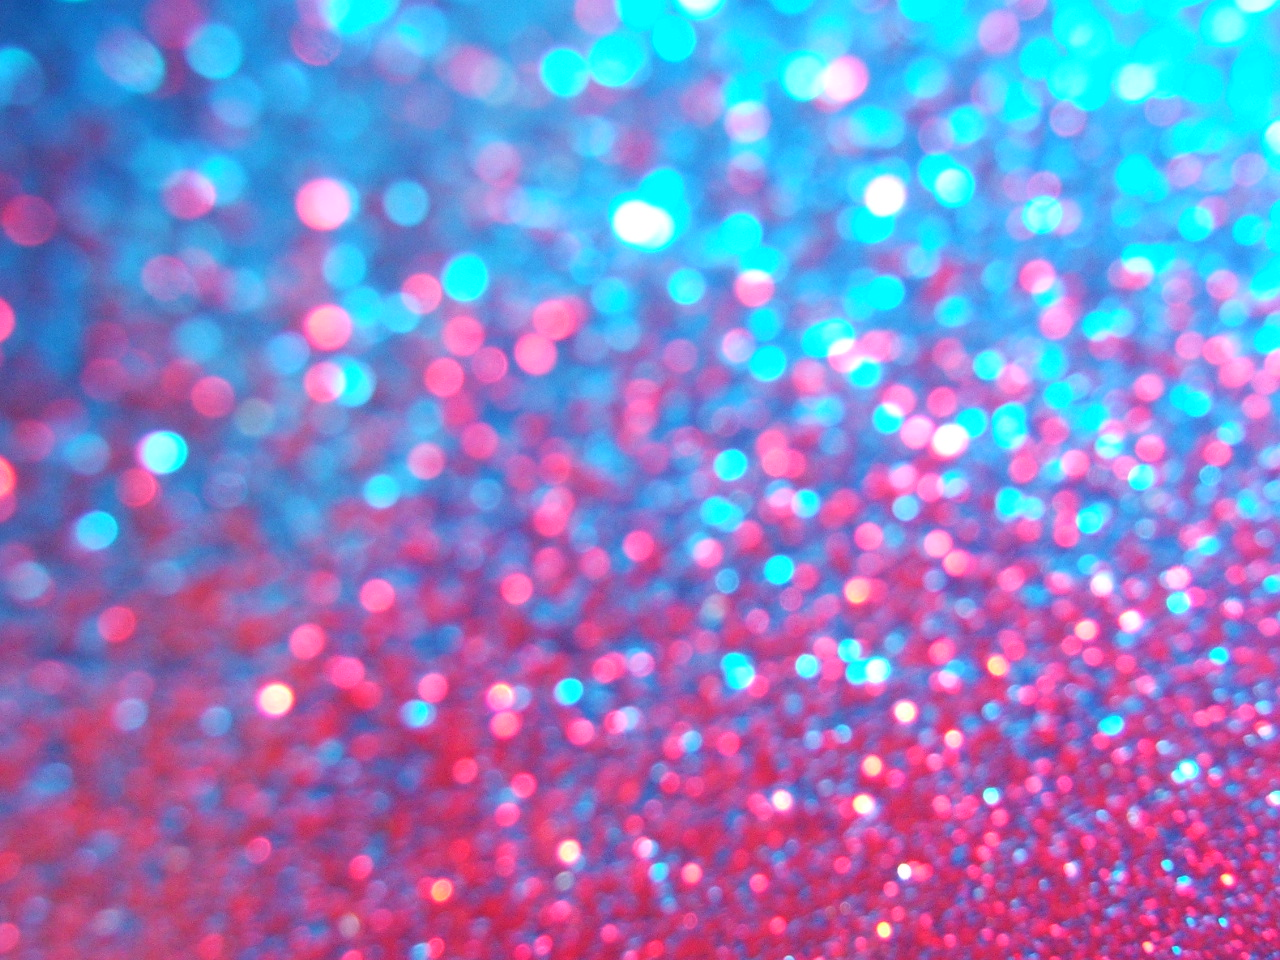 1000+ images about glitter on Pinterest | Glitter art, Turquoise